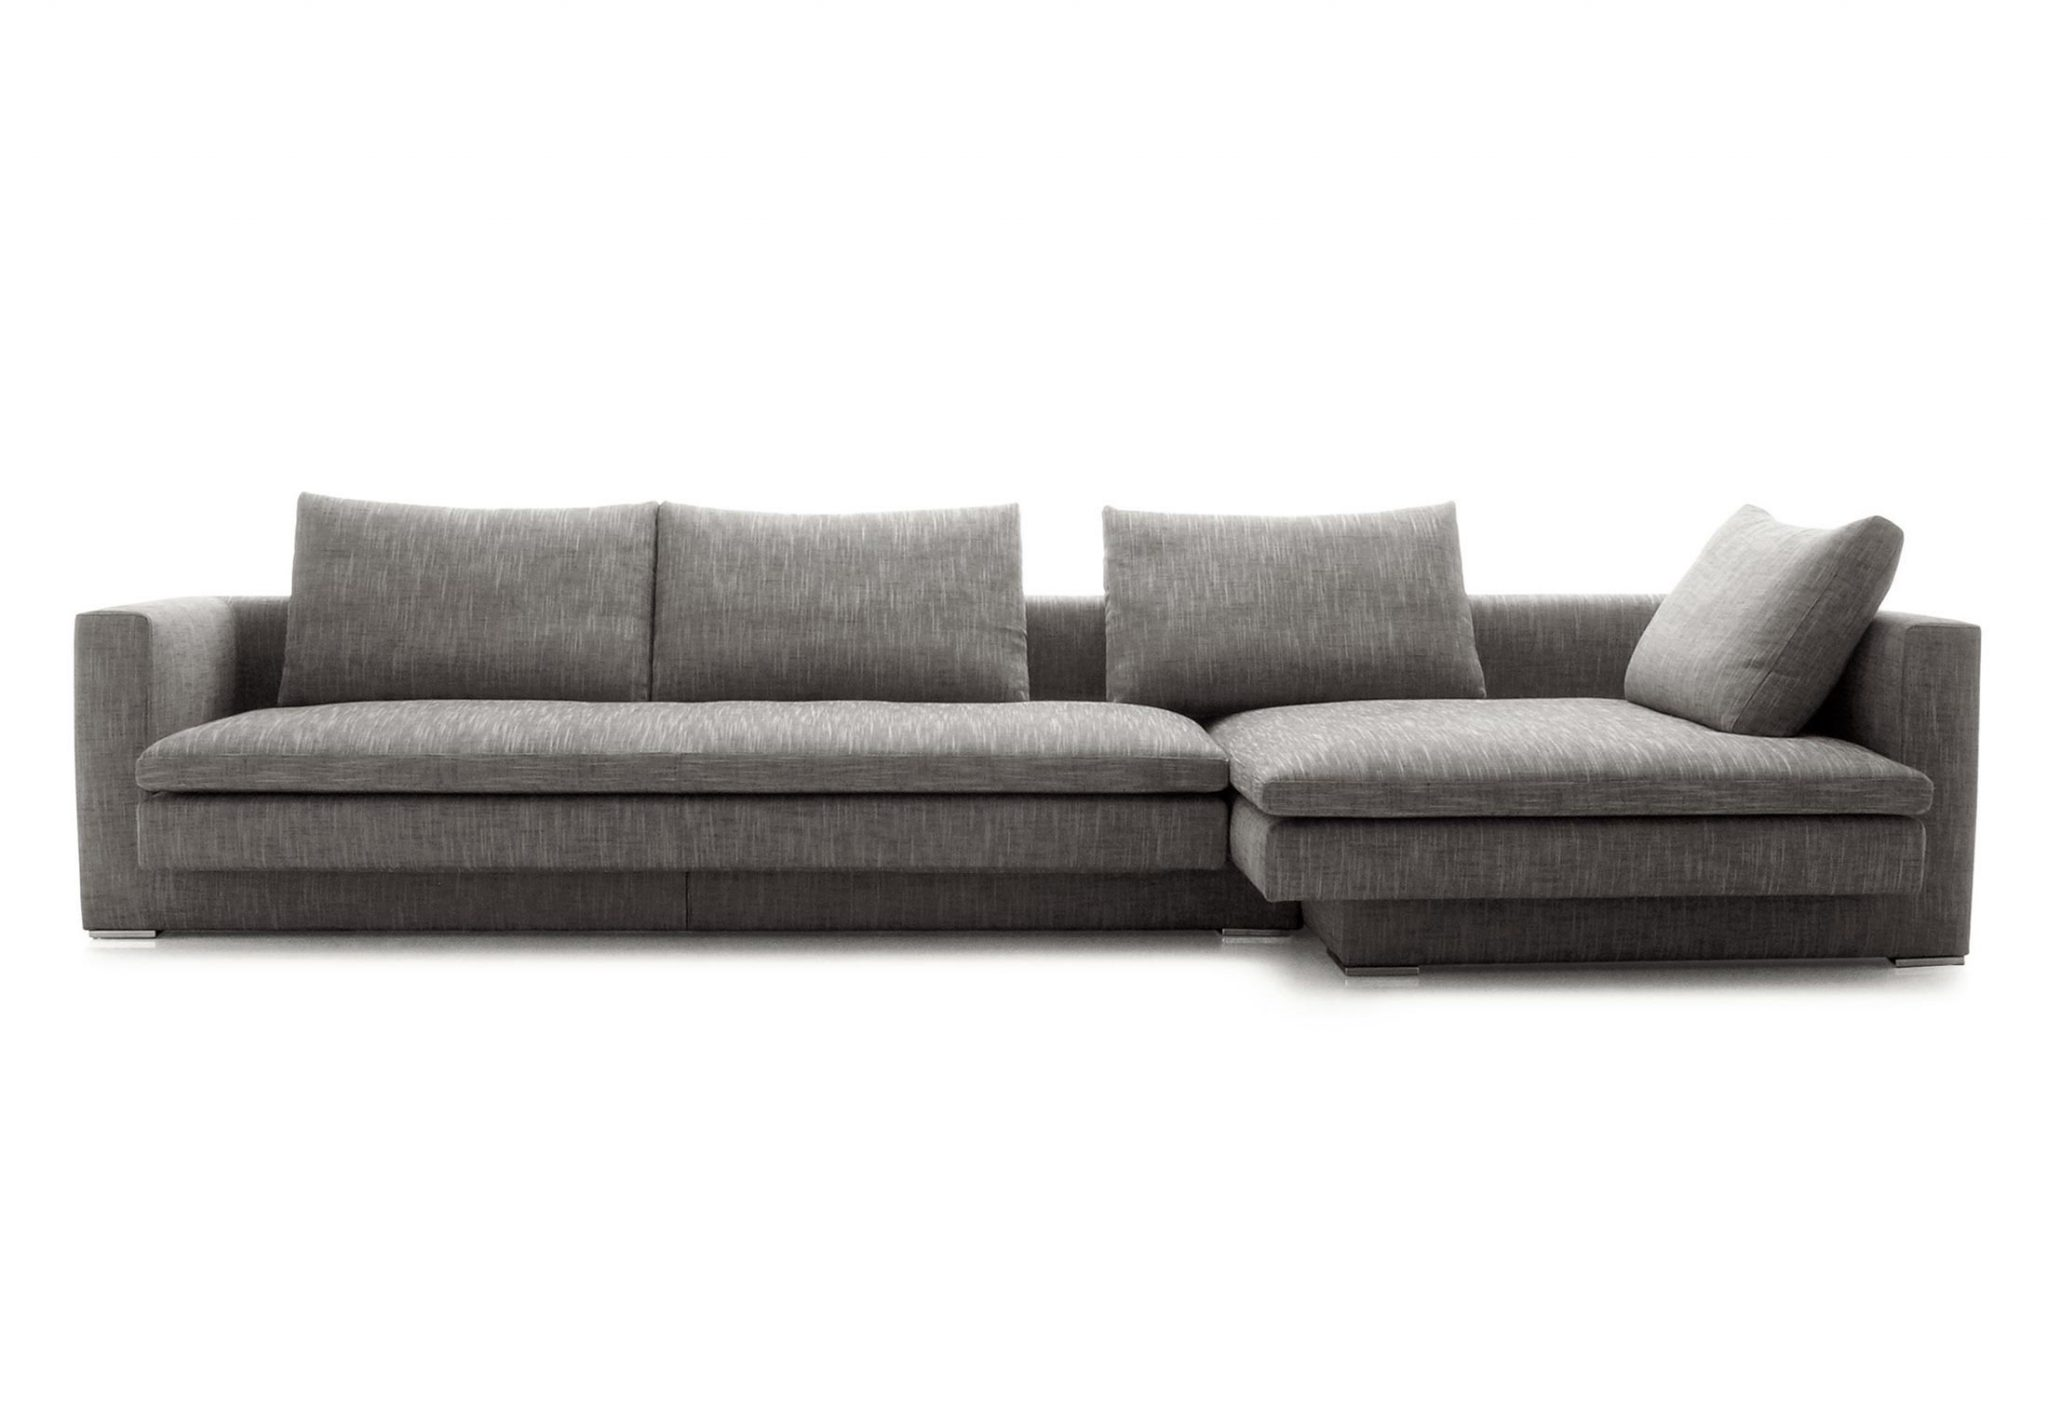 molteni c hi bridge sofa. Black Bedroom Furniture Sets. Home Design Ideas